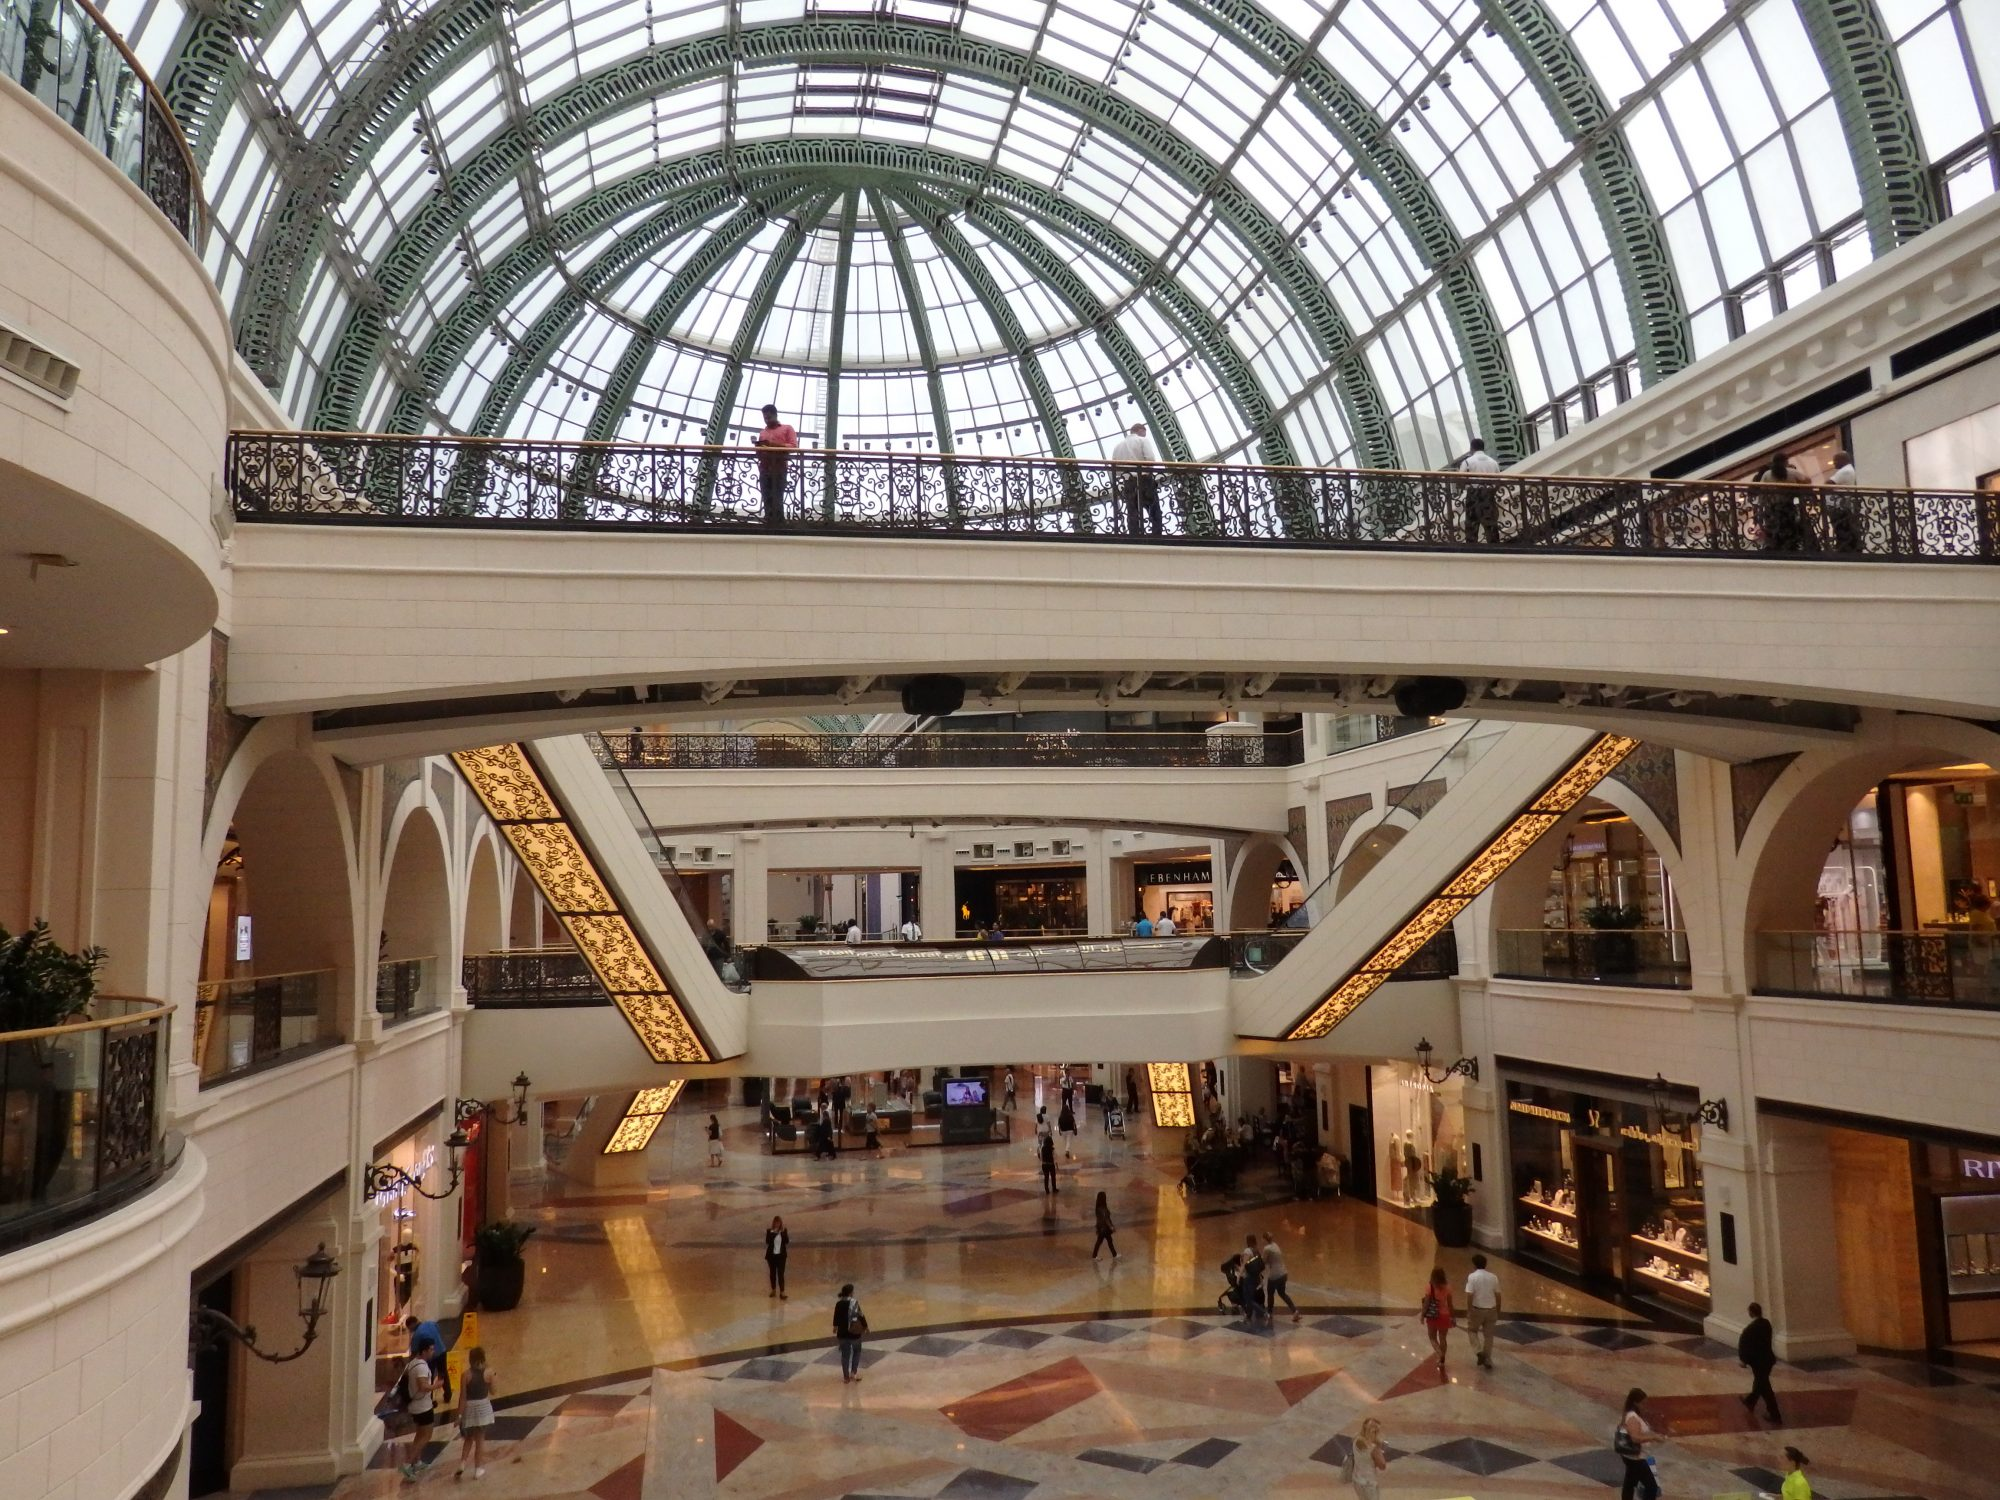 Half of the main atrium of the Mall of the Emirates in Dubai